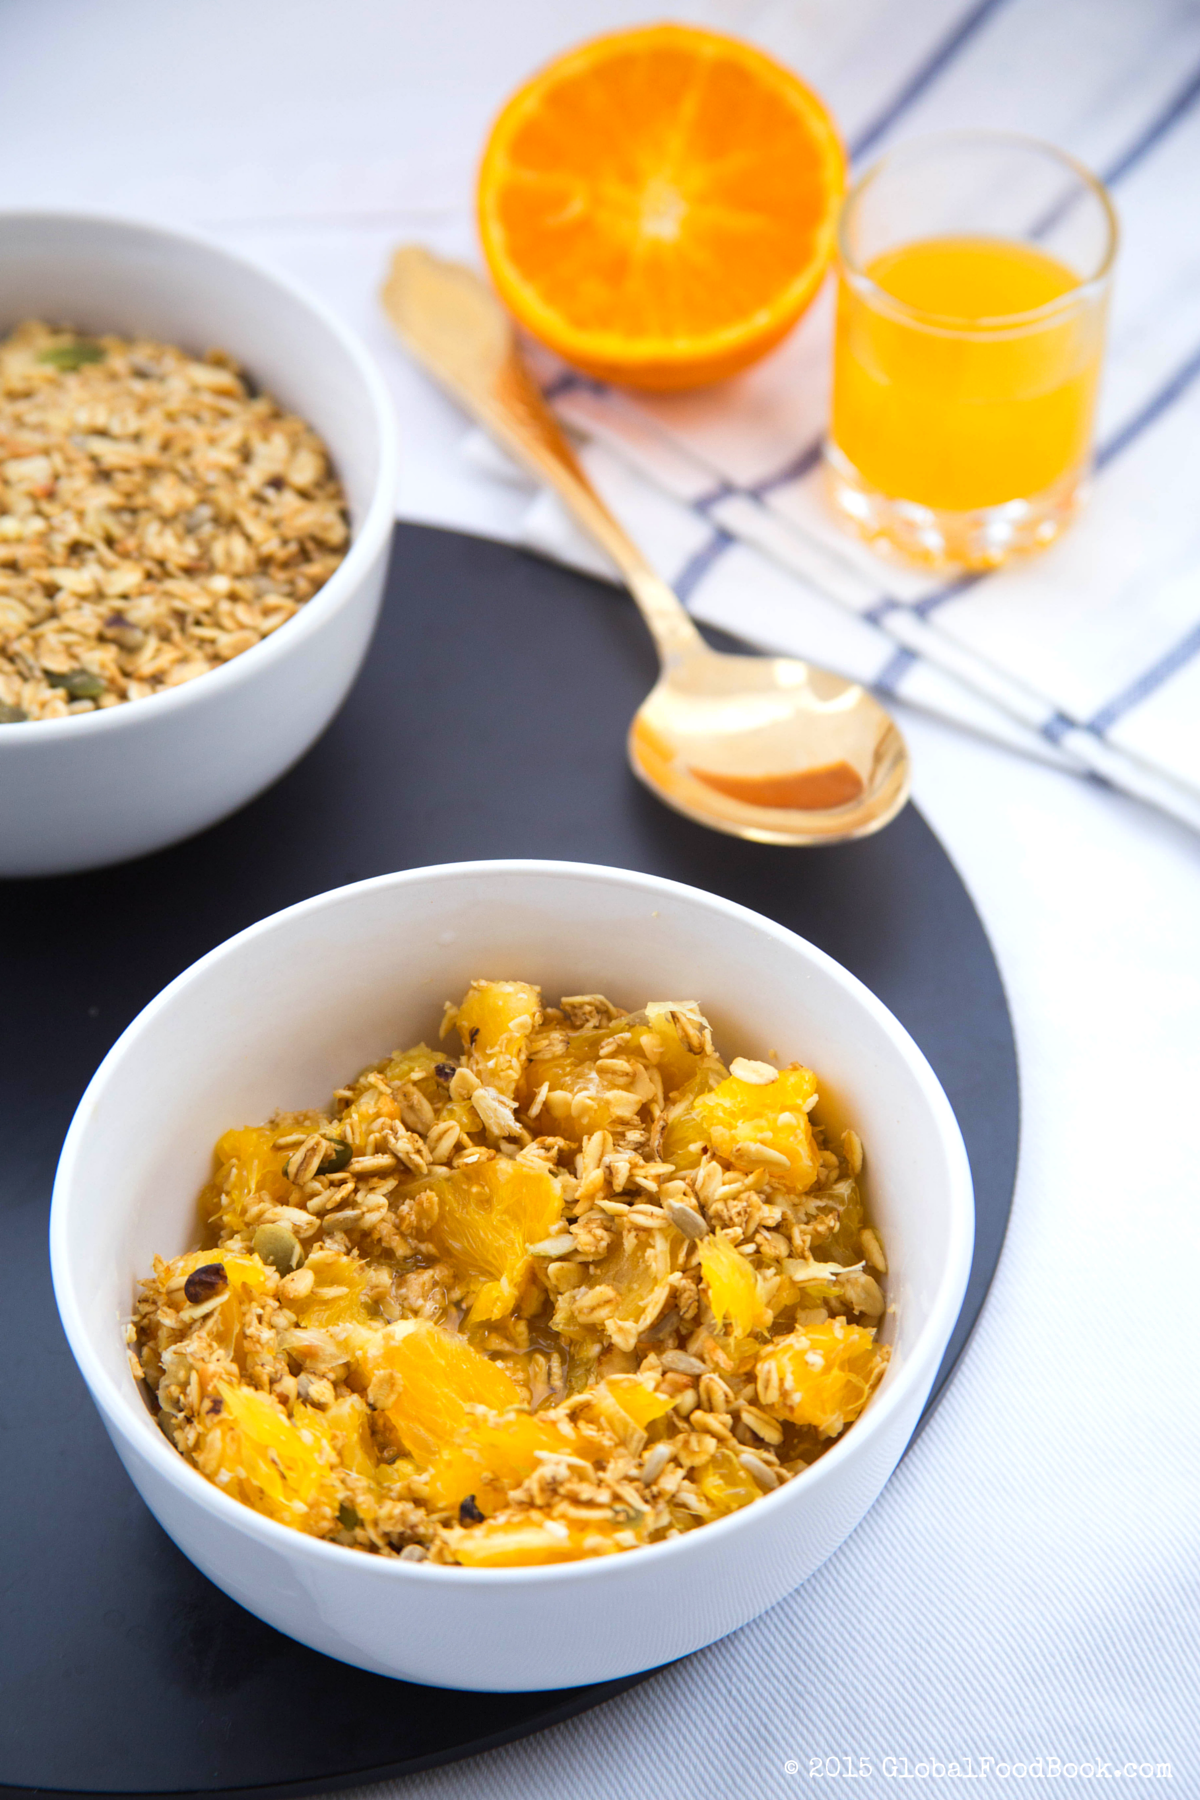 SWEET ORANGE GRANOLA